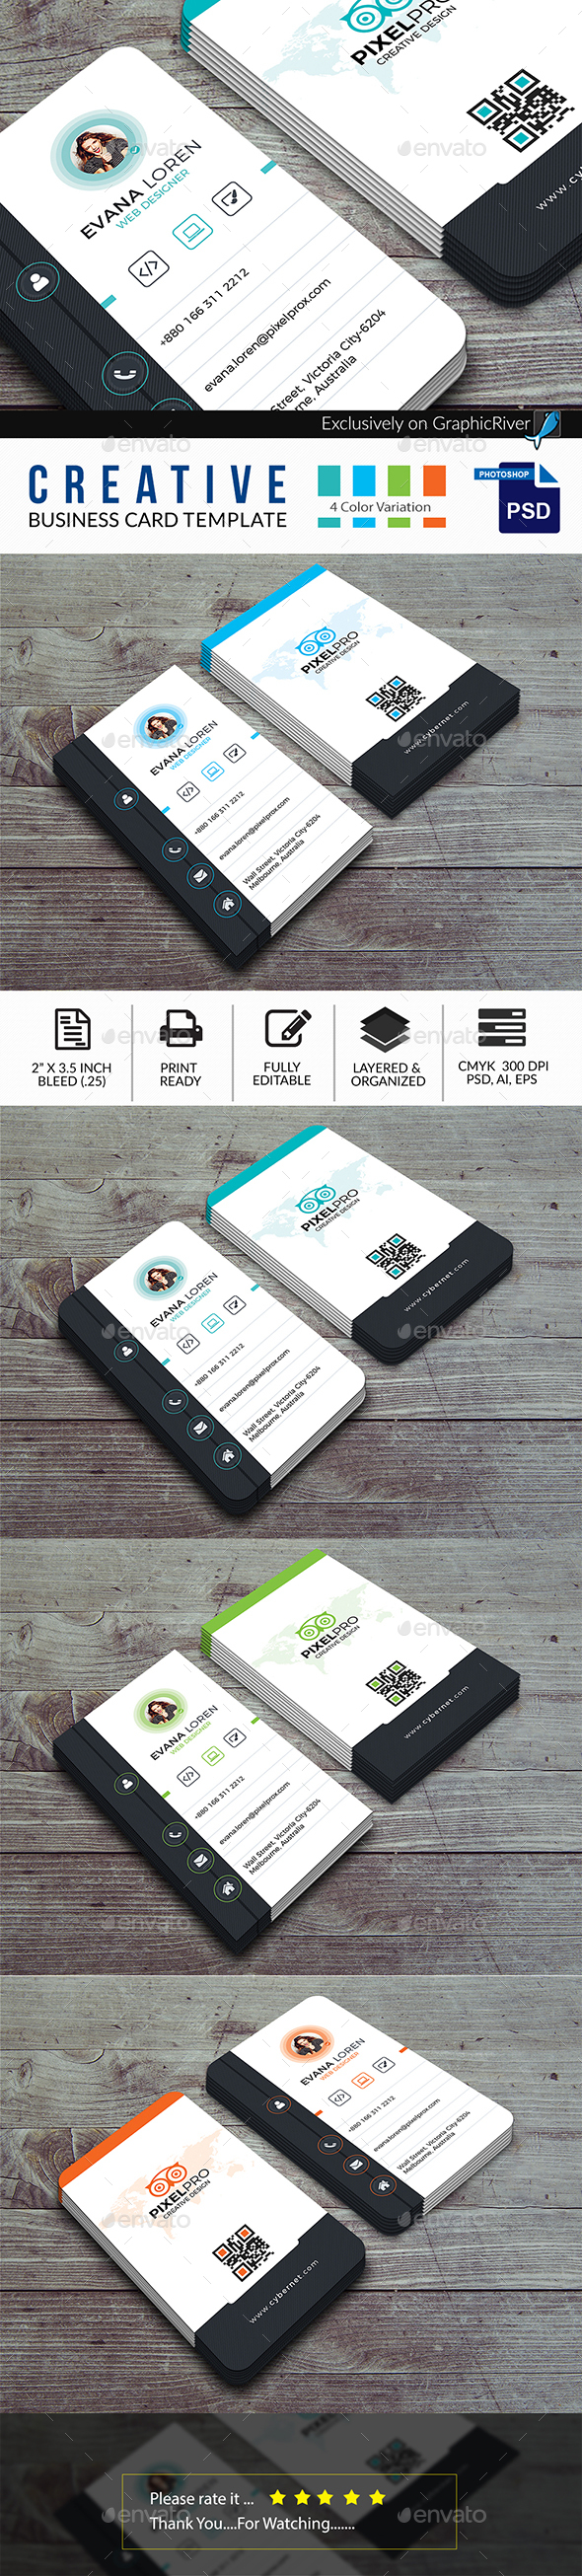 Business card print template by colorsstudio graphicriver business card print template business cards print templates magicingreecefo Gallery